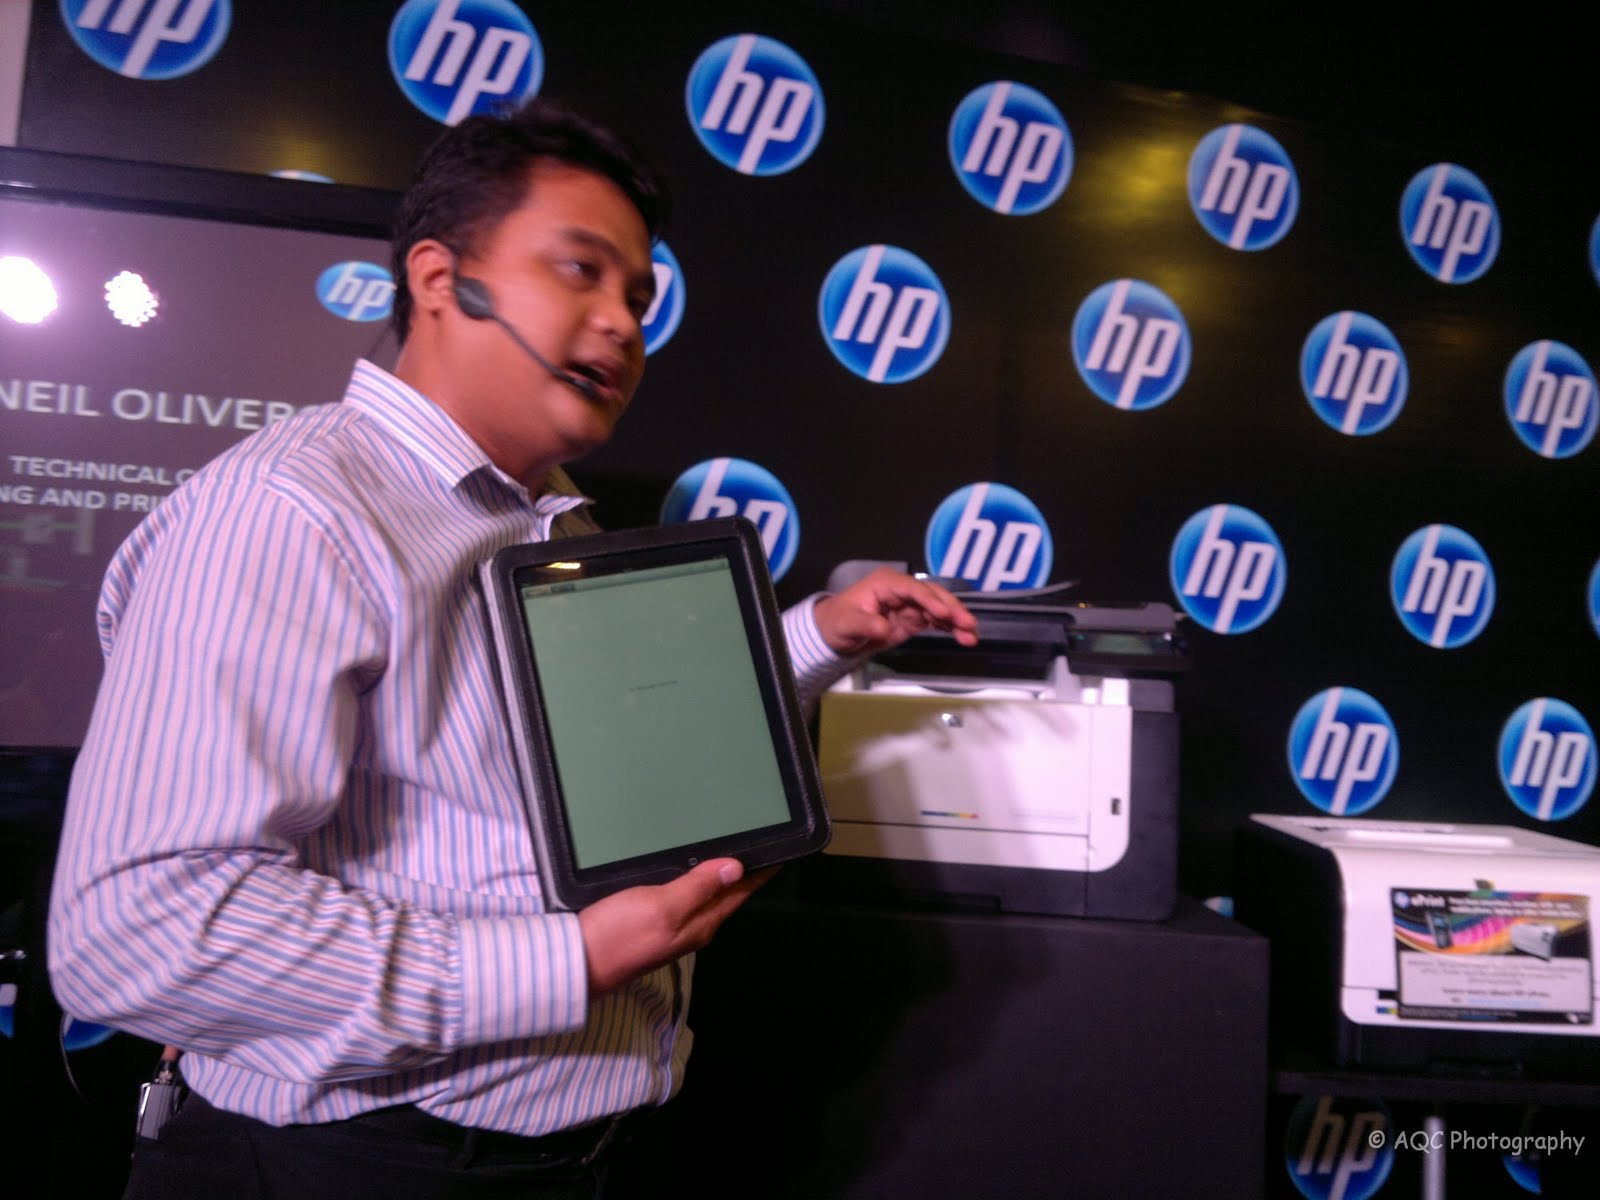 EPrint technology from HP ~ Cheftonio's Blog